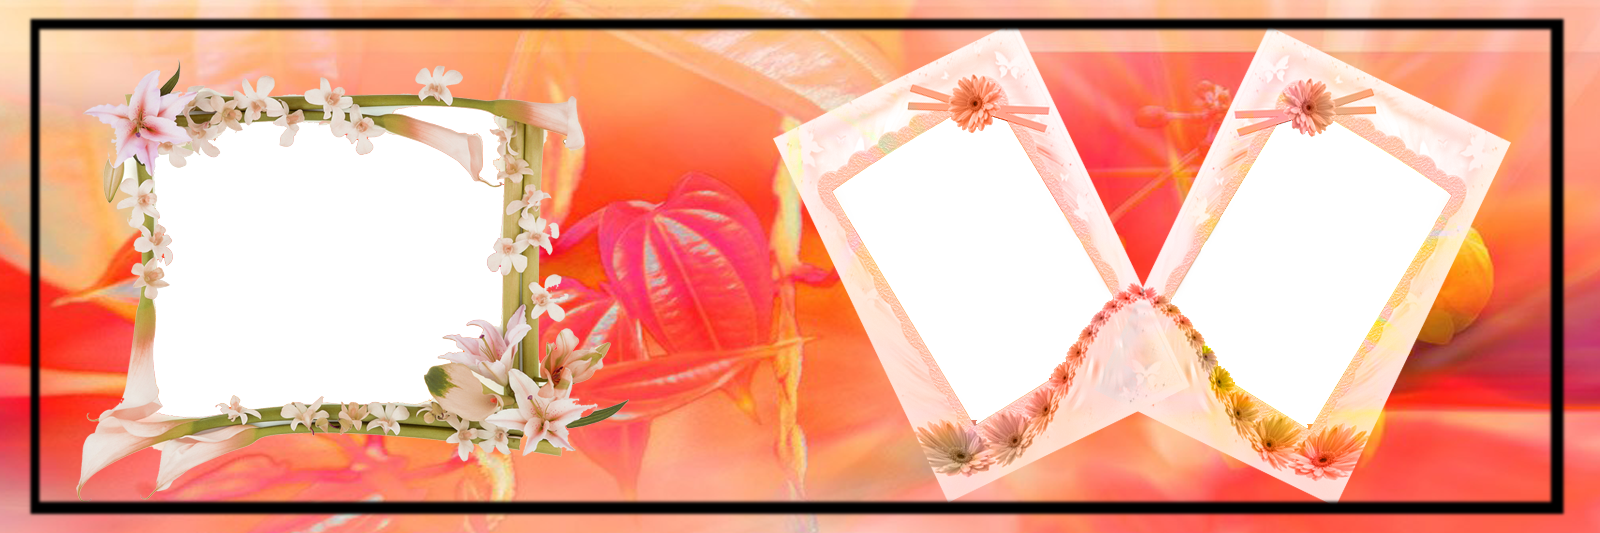 Download Wedding Album Frames Png Aspen For Women By Coty 0 75 Oz Cologne Spray Full Size Png Image Pngkit